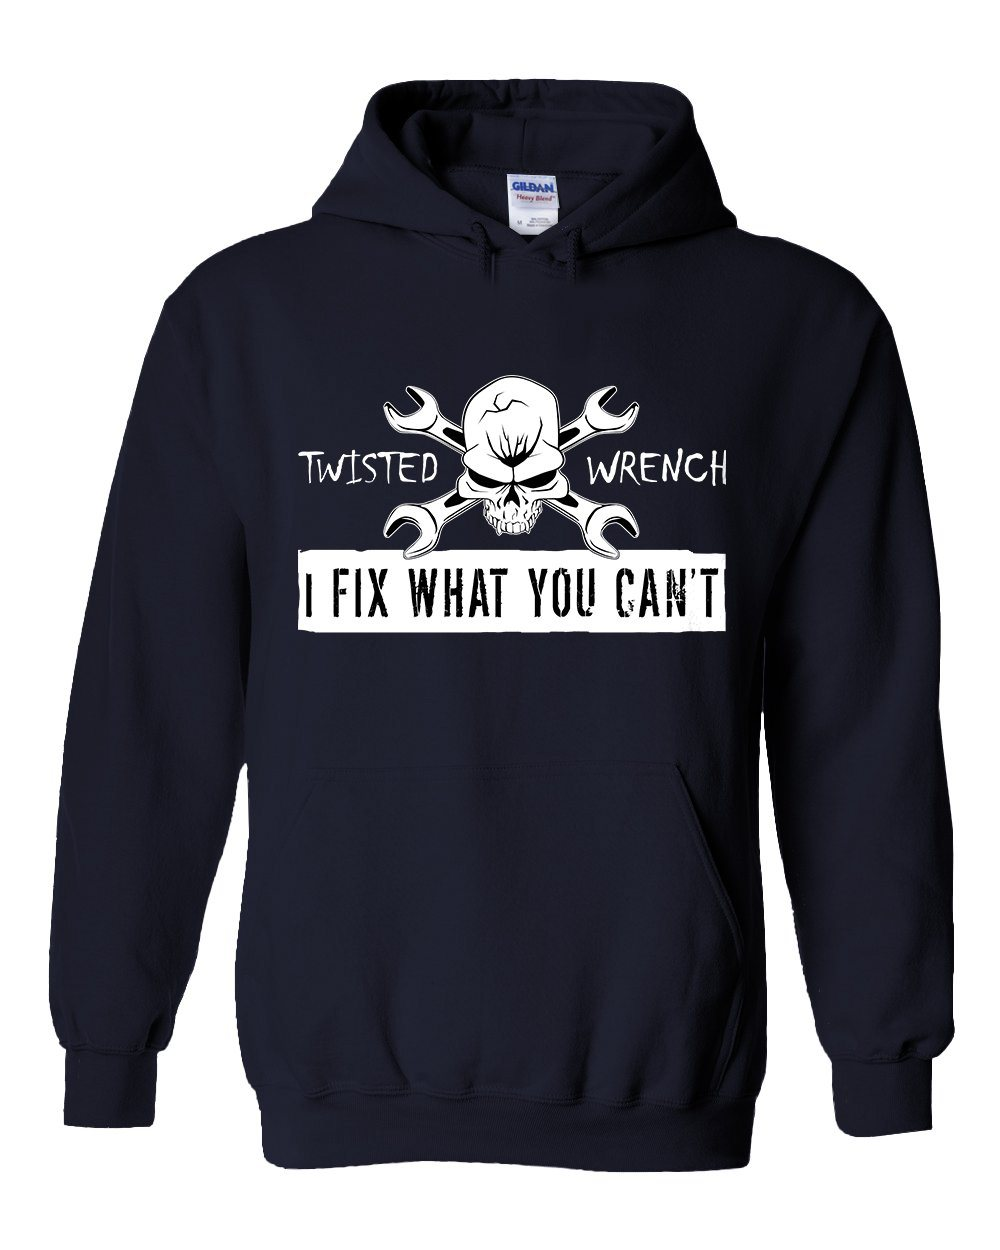 Mechanic Sweatshirt | Gift For Mechanic | Aggressive Thread Mechanic Apparel